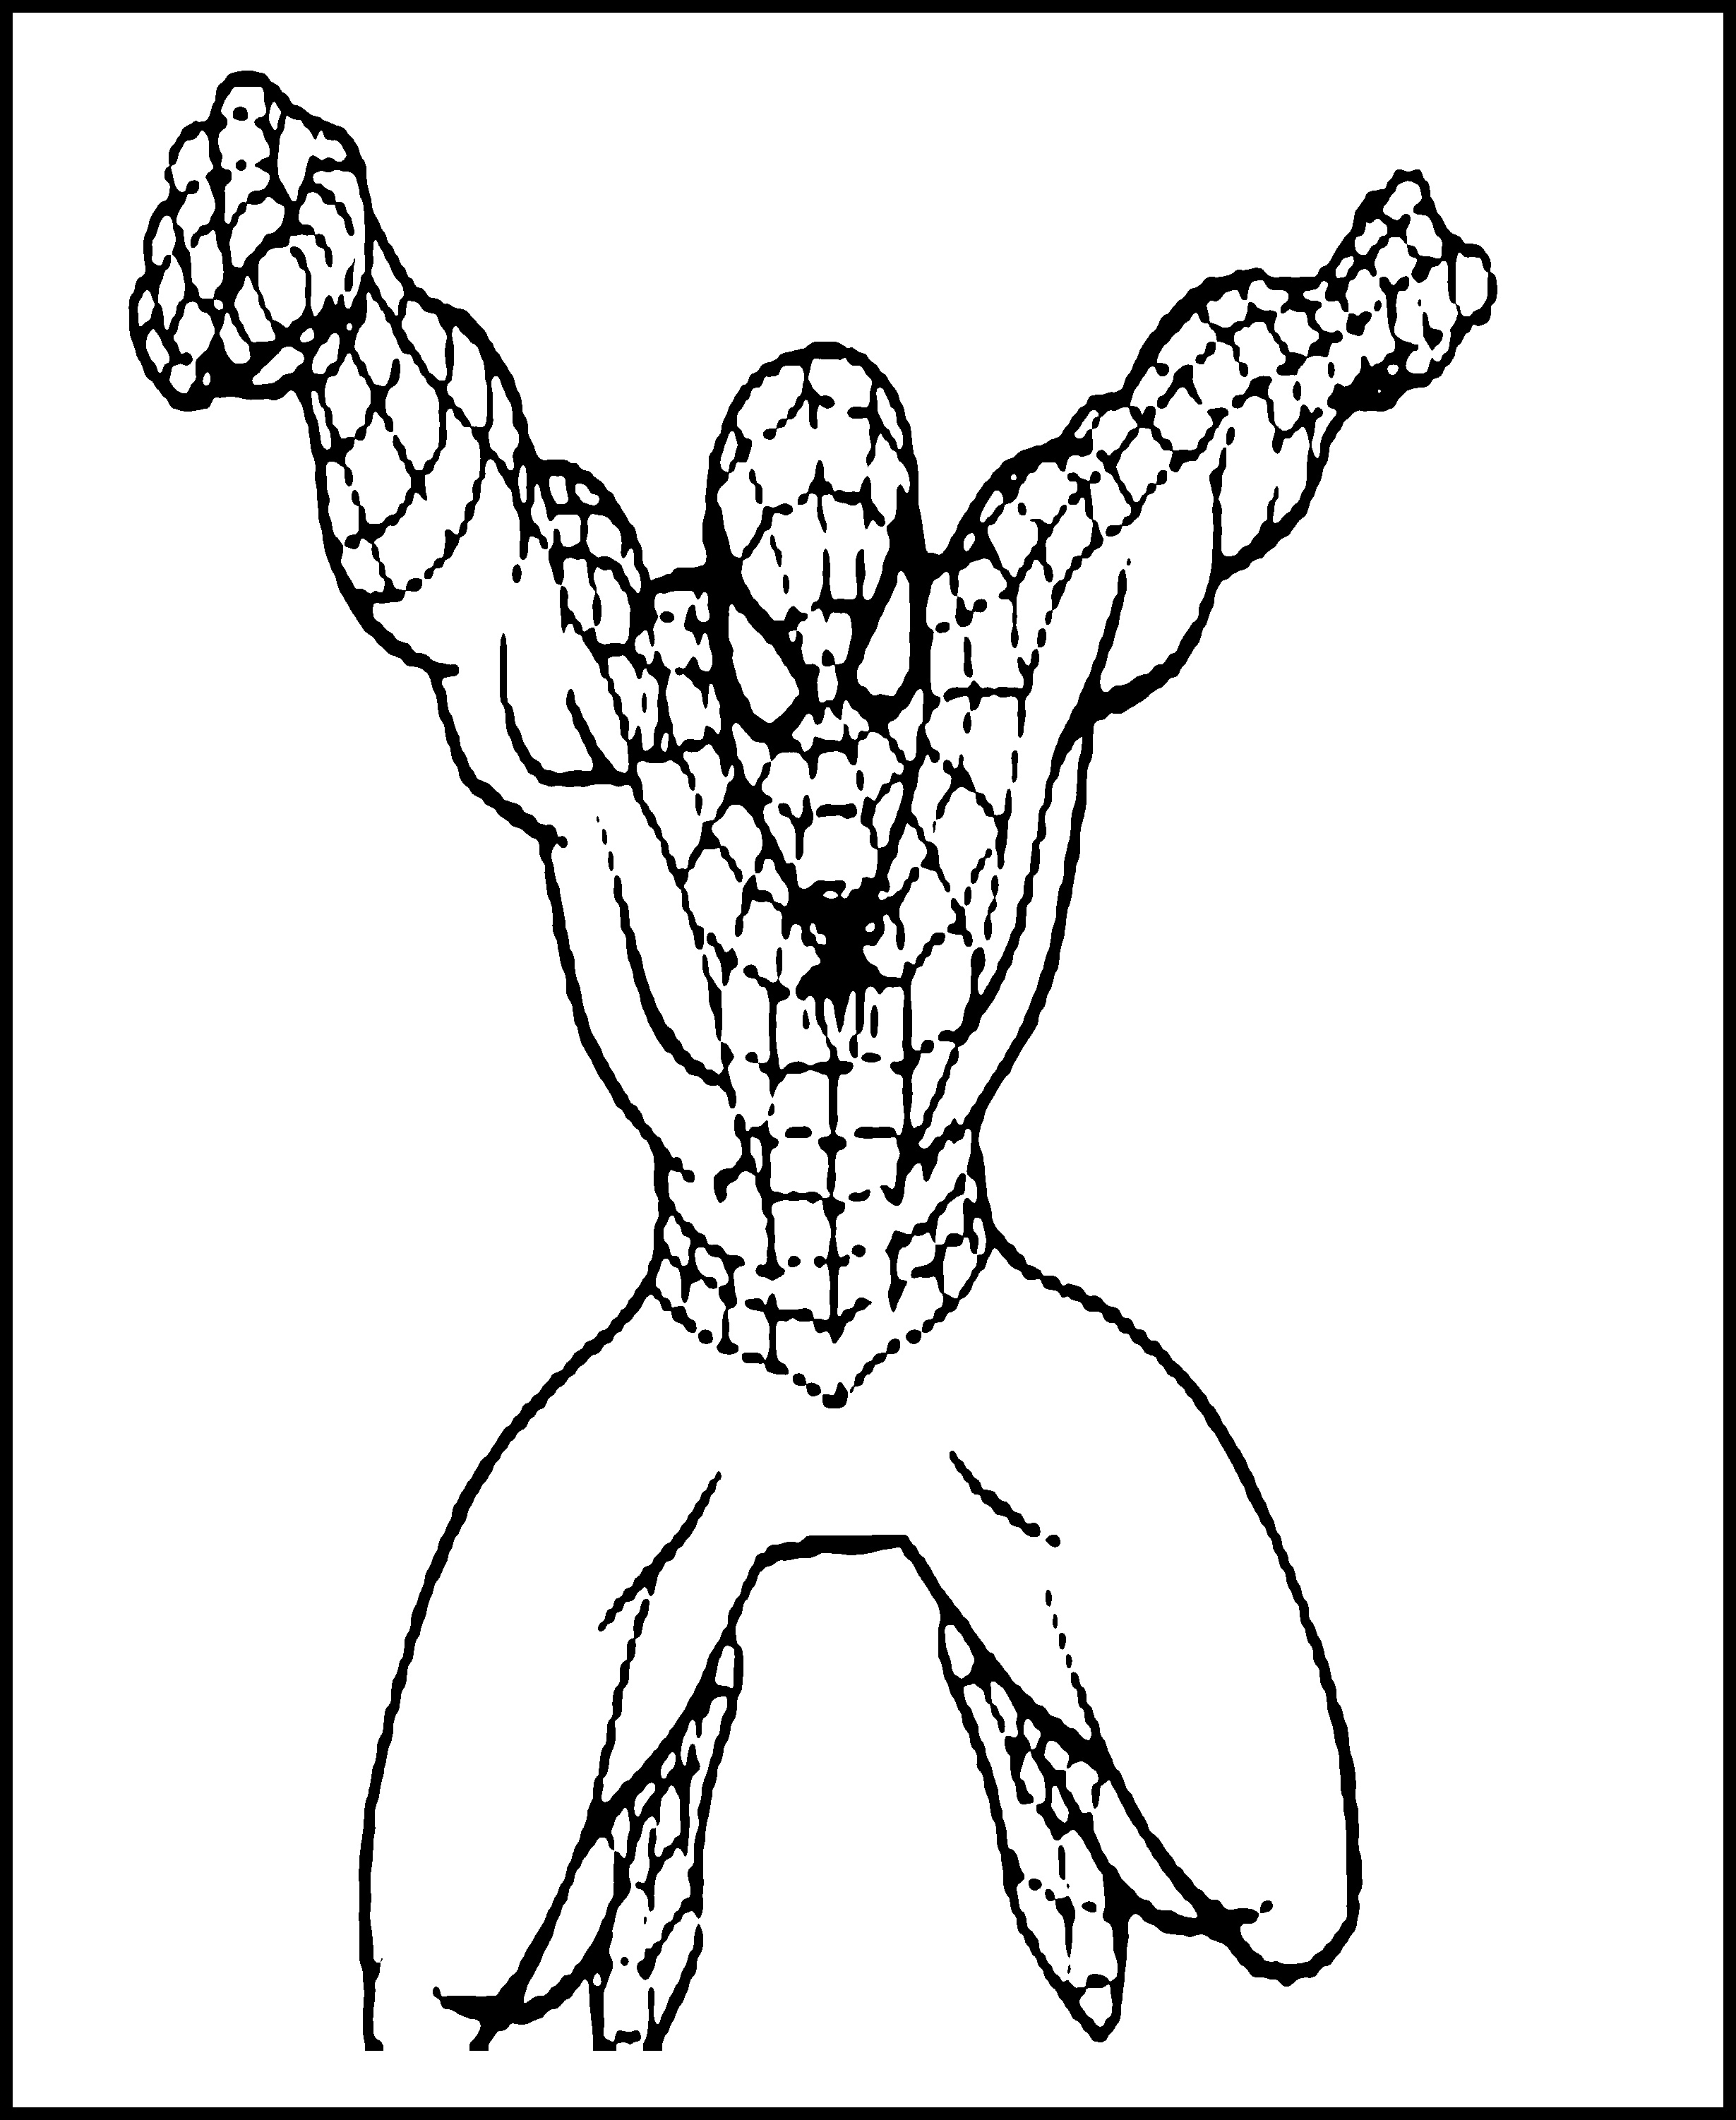 spiderman coloring pages to print out - Pages To Color